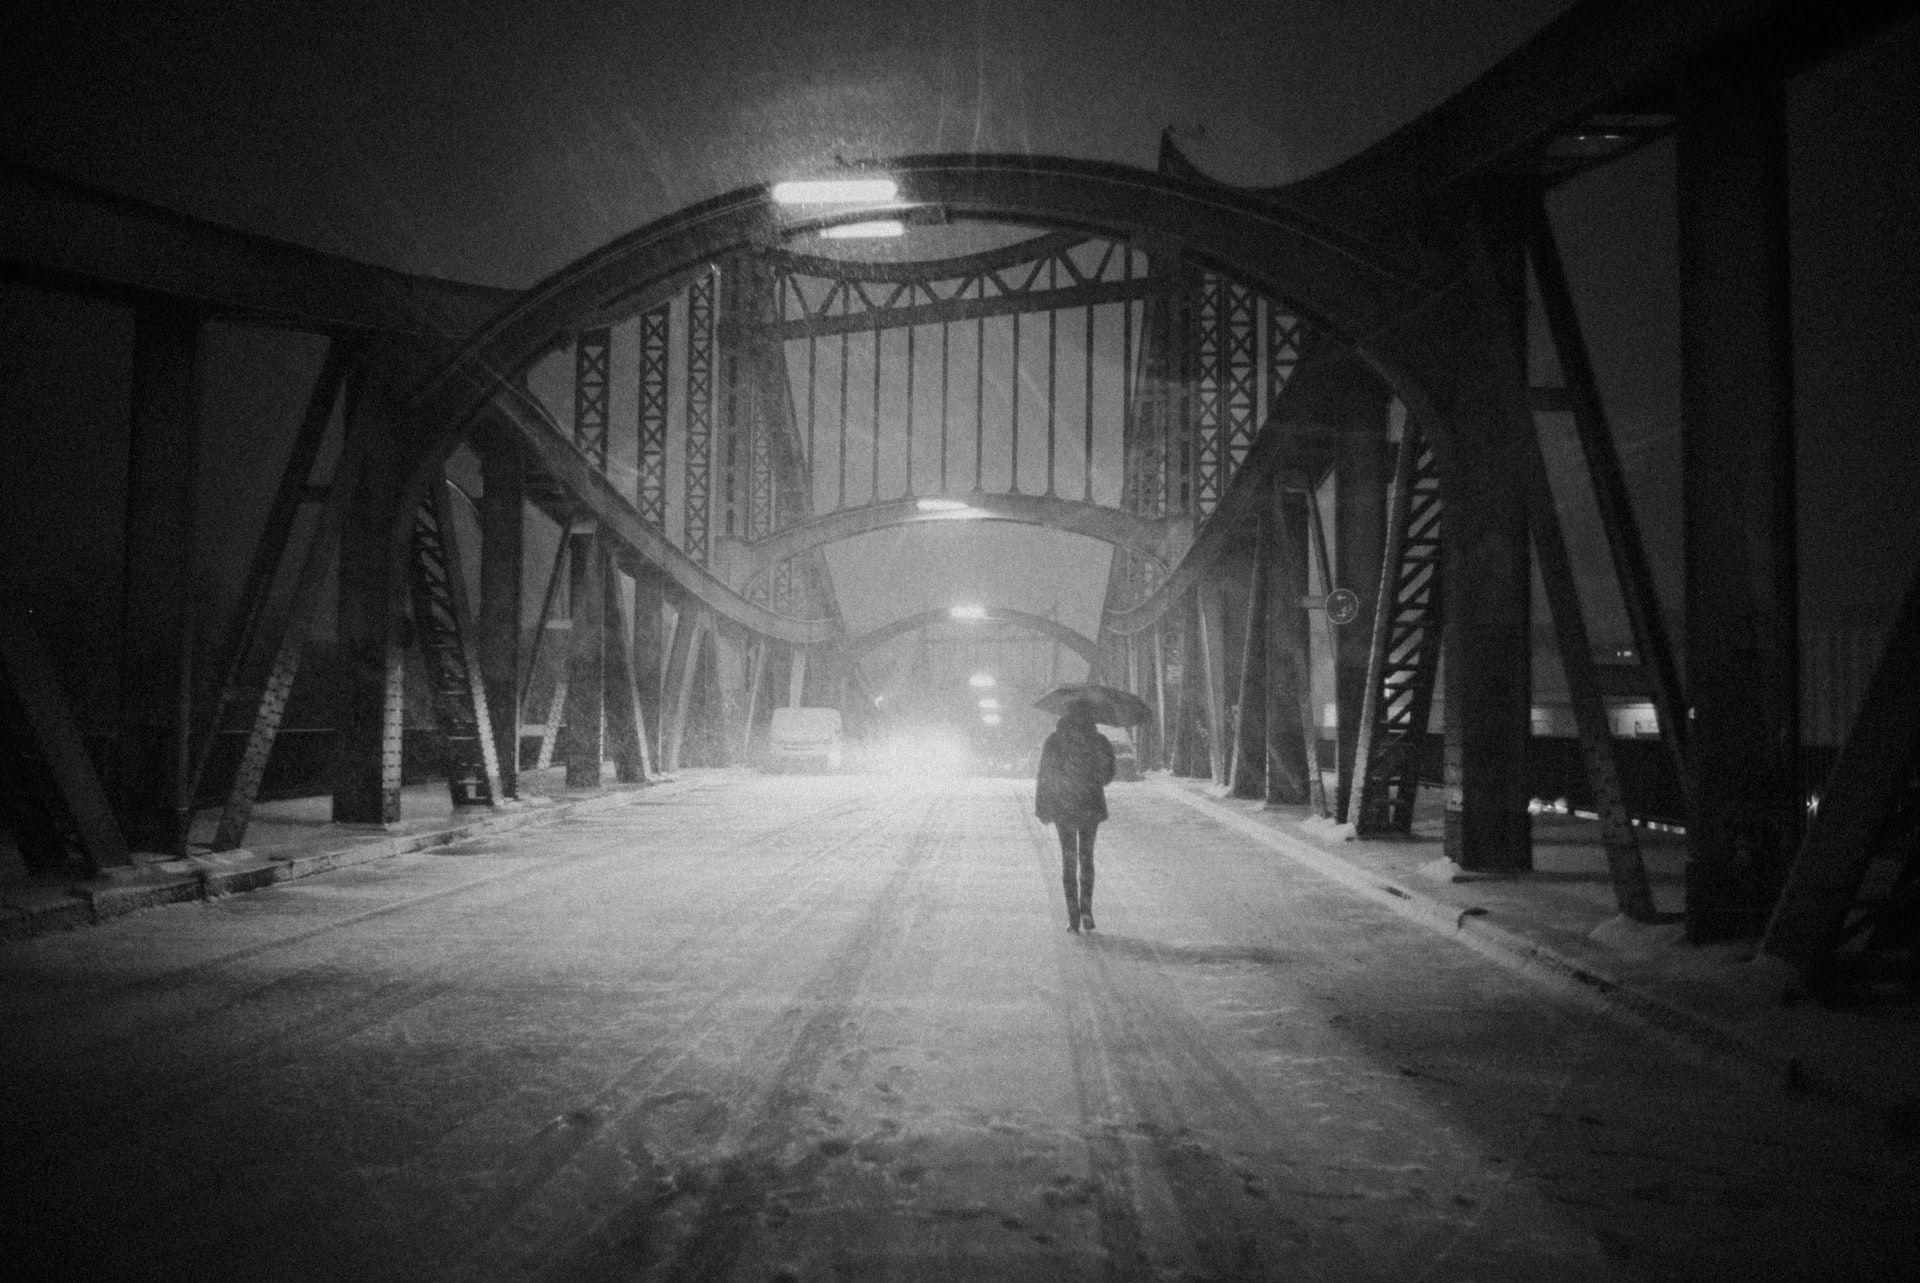 ANYWHERE, ANYTIME: Walking through Berlin in a snowstorm